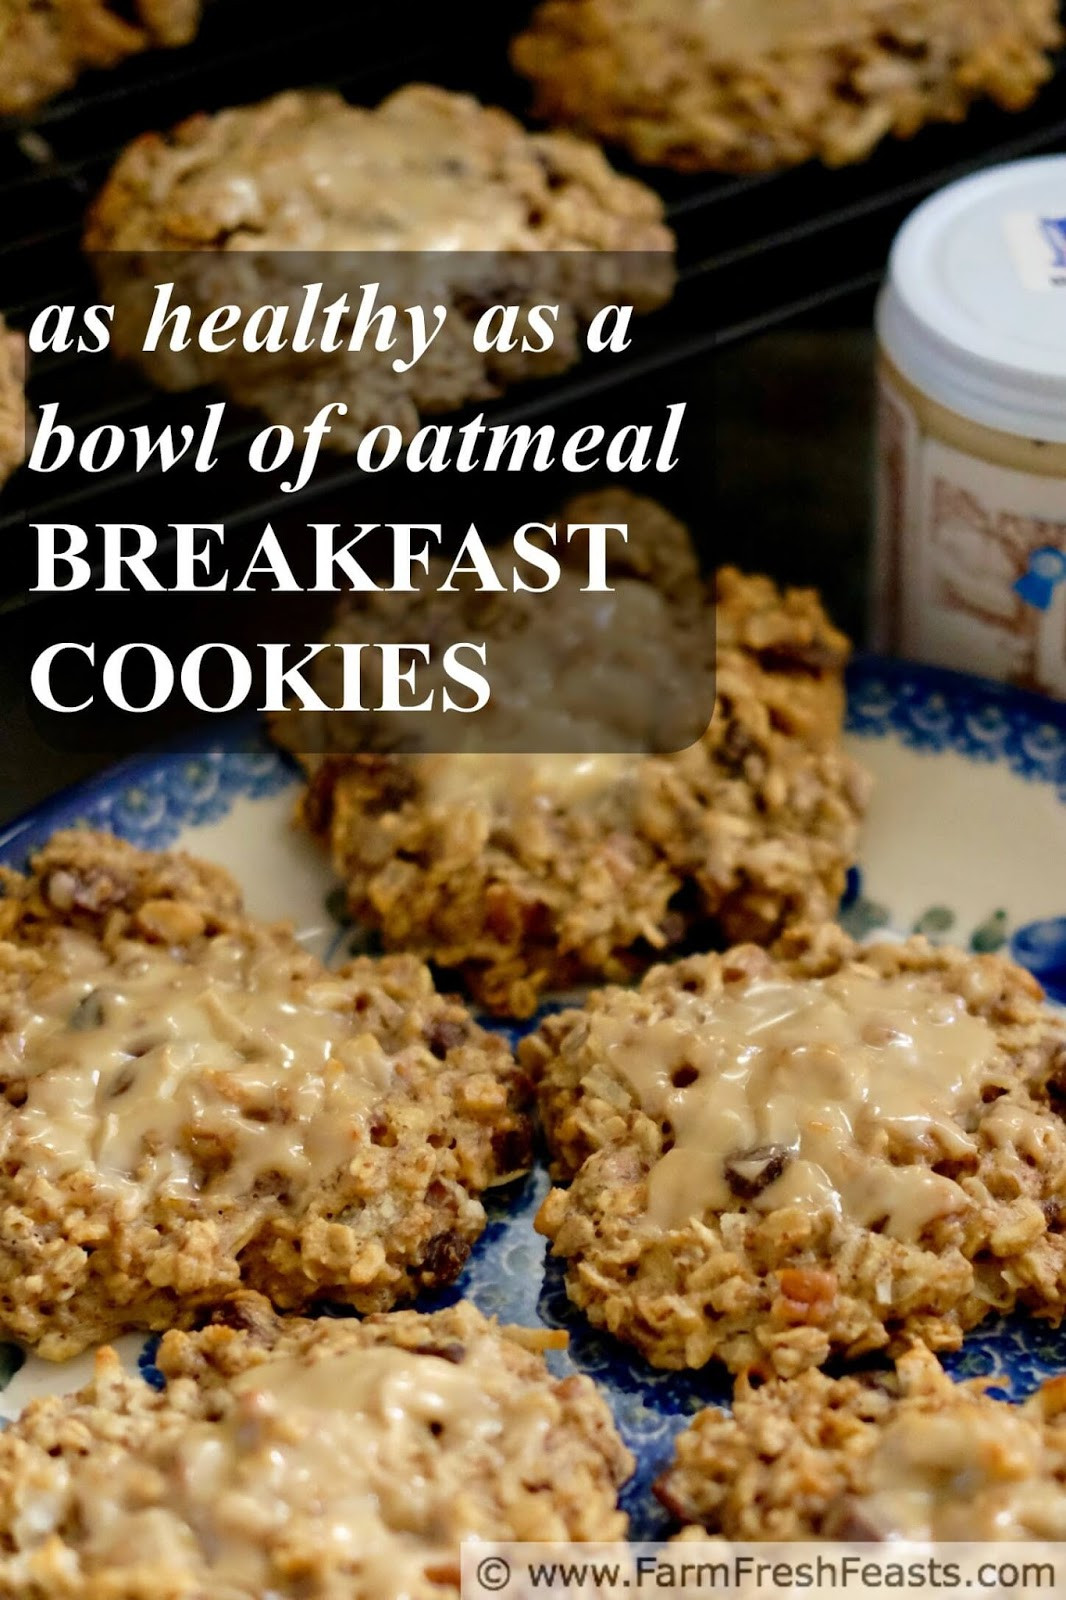 Breakfast Cookies Healthy  Farm Fresh Feasts Healthy Breakfast Cookies